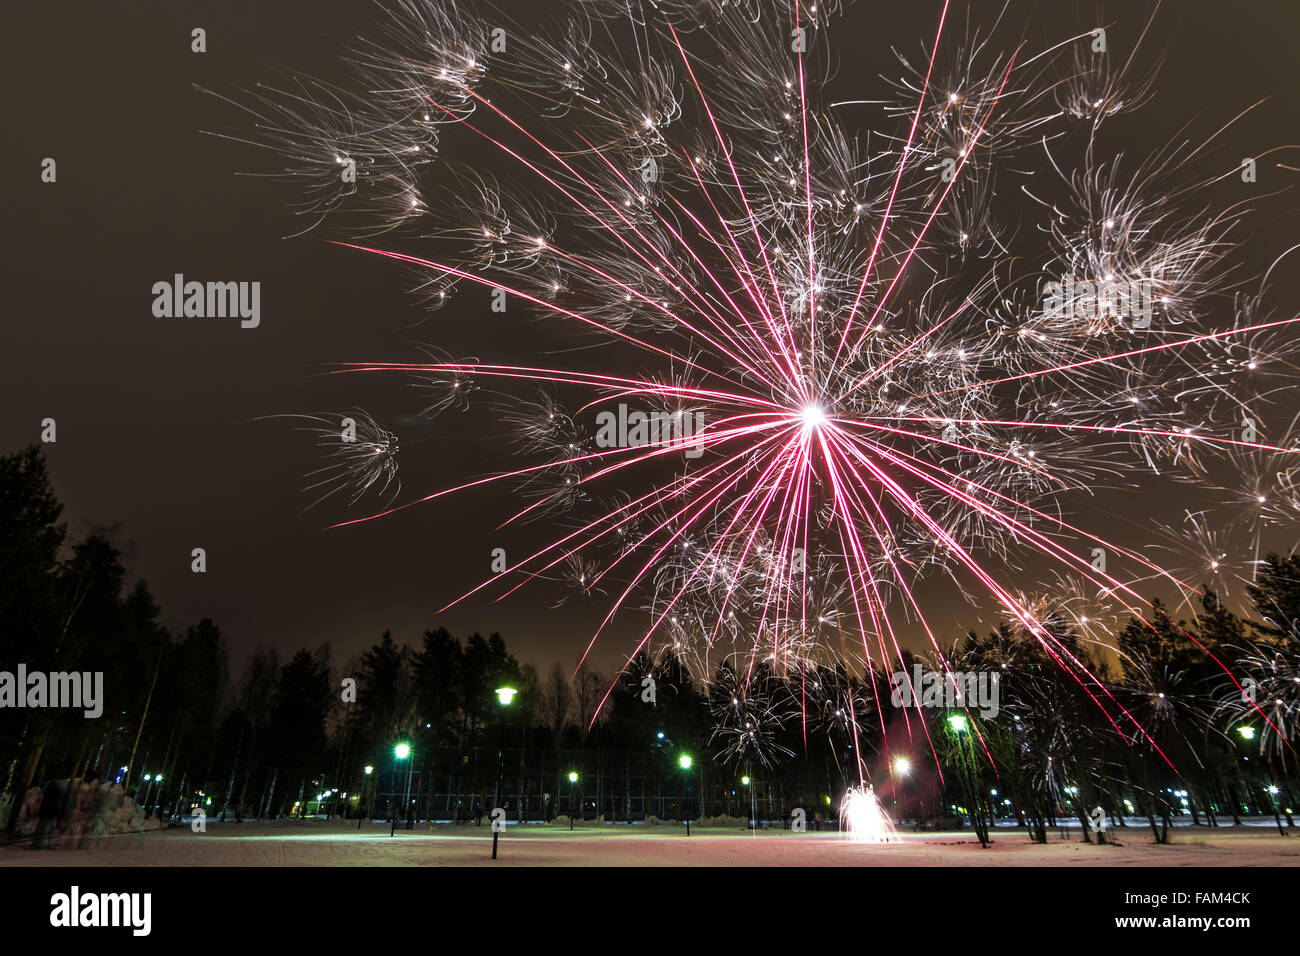 New Year's fireworks in Oulu, Finland - Stock Image